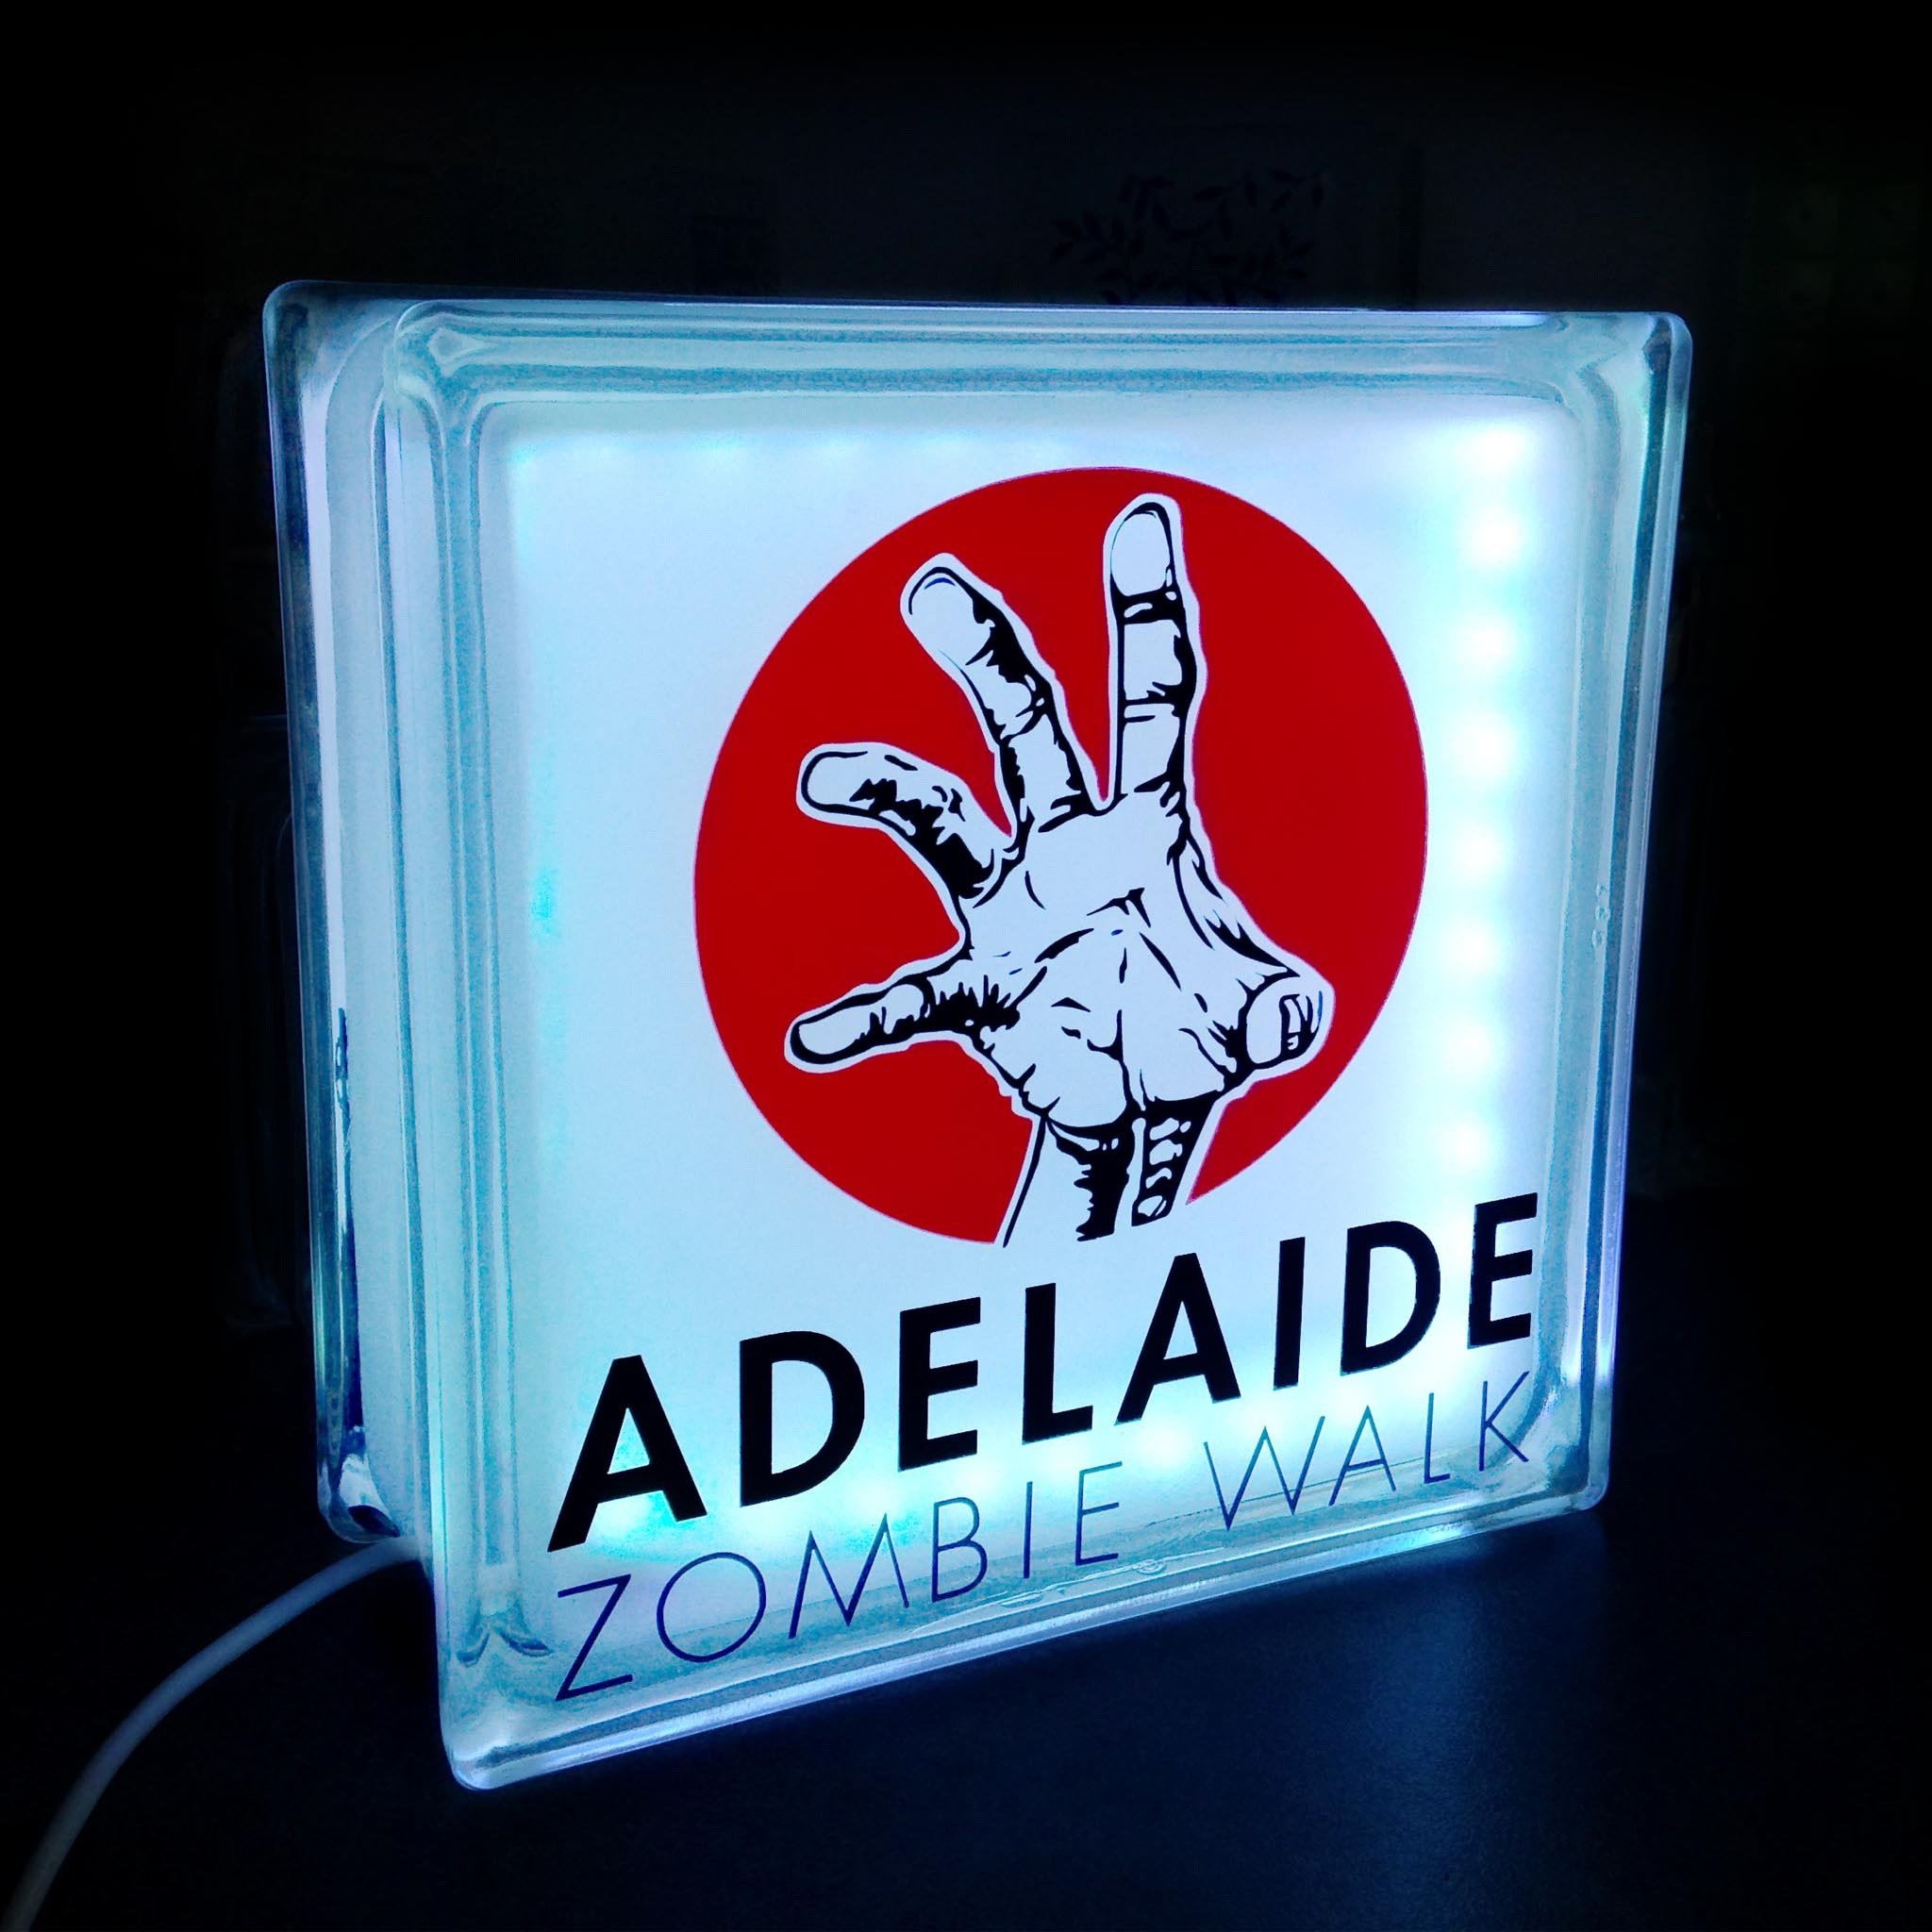 Adelaide zombie walk glass block globlock